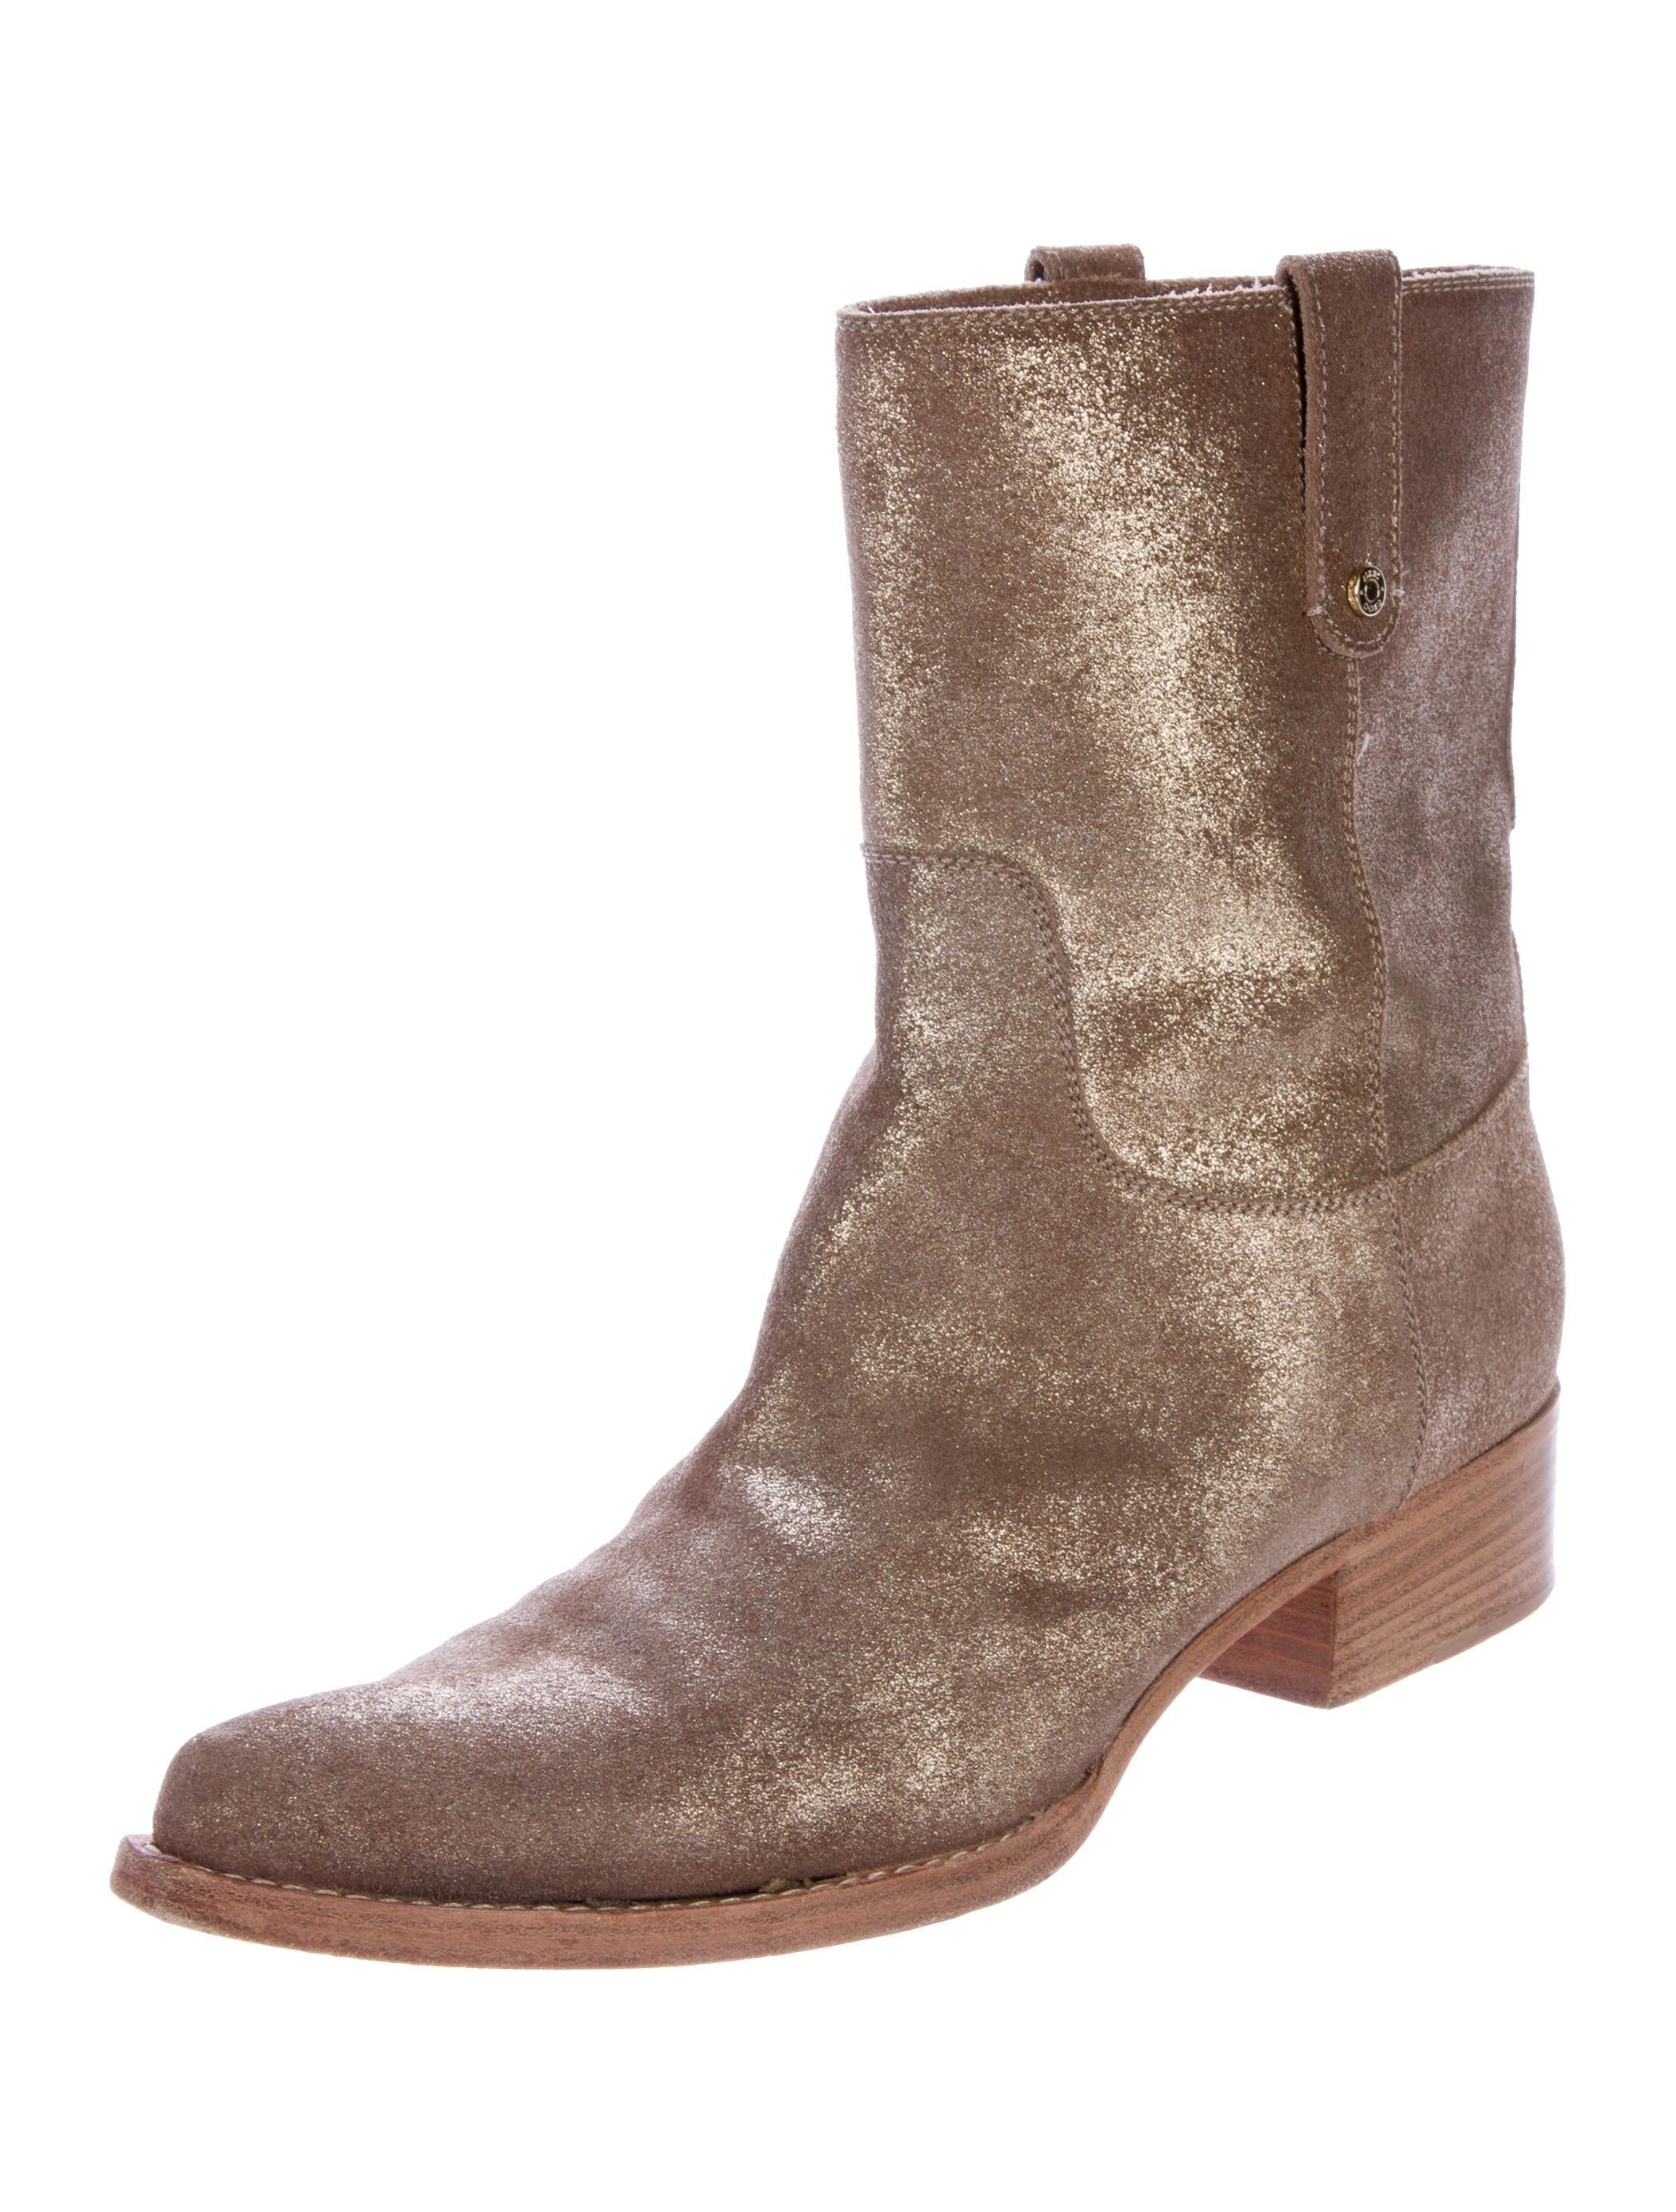 Metallic Leather Boots : Jimmy choo metallic leather ankle boots shoes jim